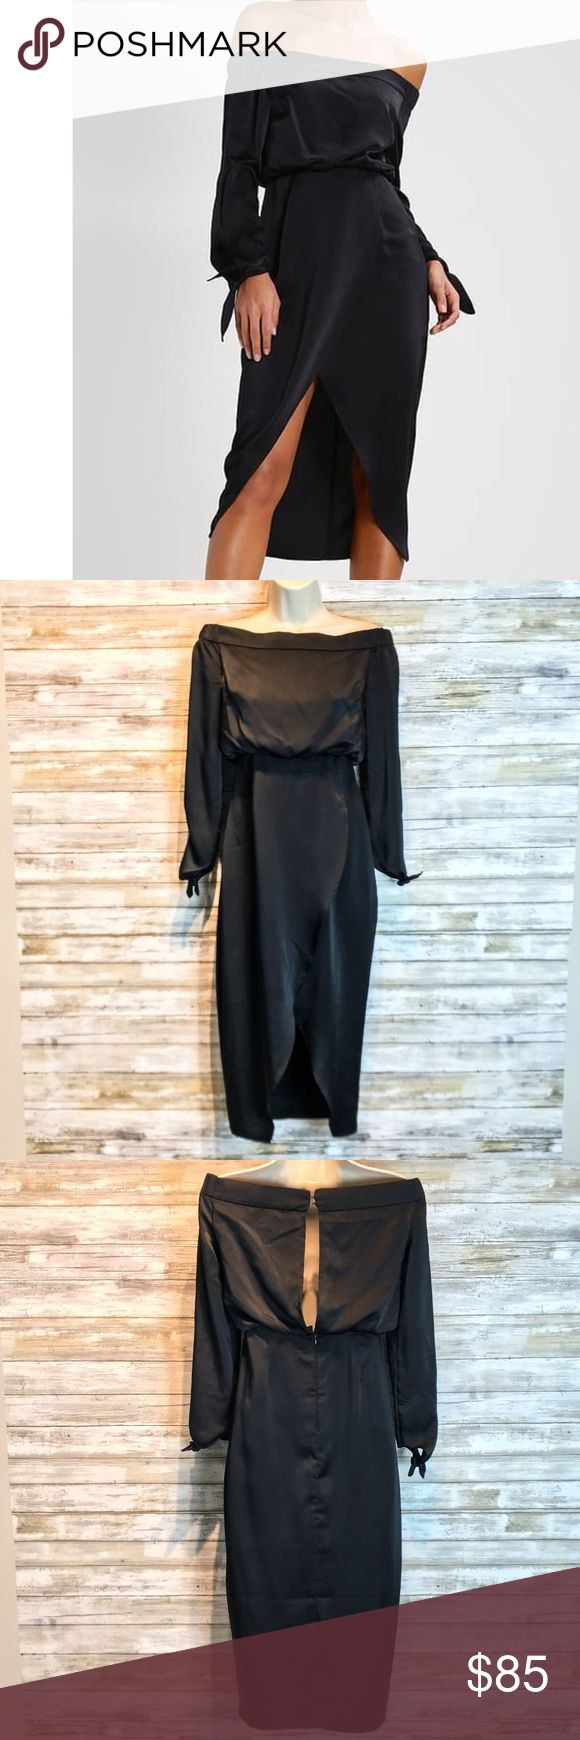 NWT Lavish Alice Summer dress sz S NWT Lavish Alice Summer black dress   Off shoulder, keyhole back, scalloped high front, Long back.  Pic measurements are shoulders, bust , & waist.   Front length is 17in back 29in  100% polyester NO STRETCH Lavish Alice Dresses